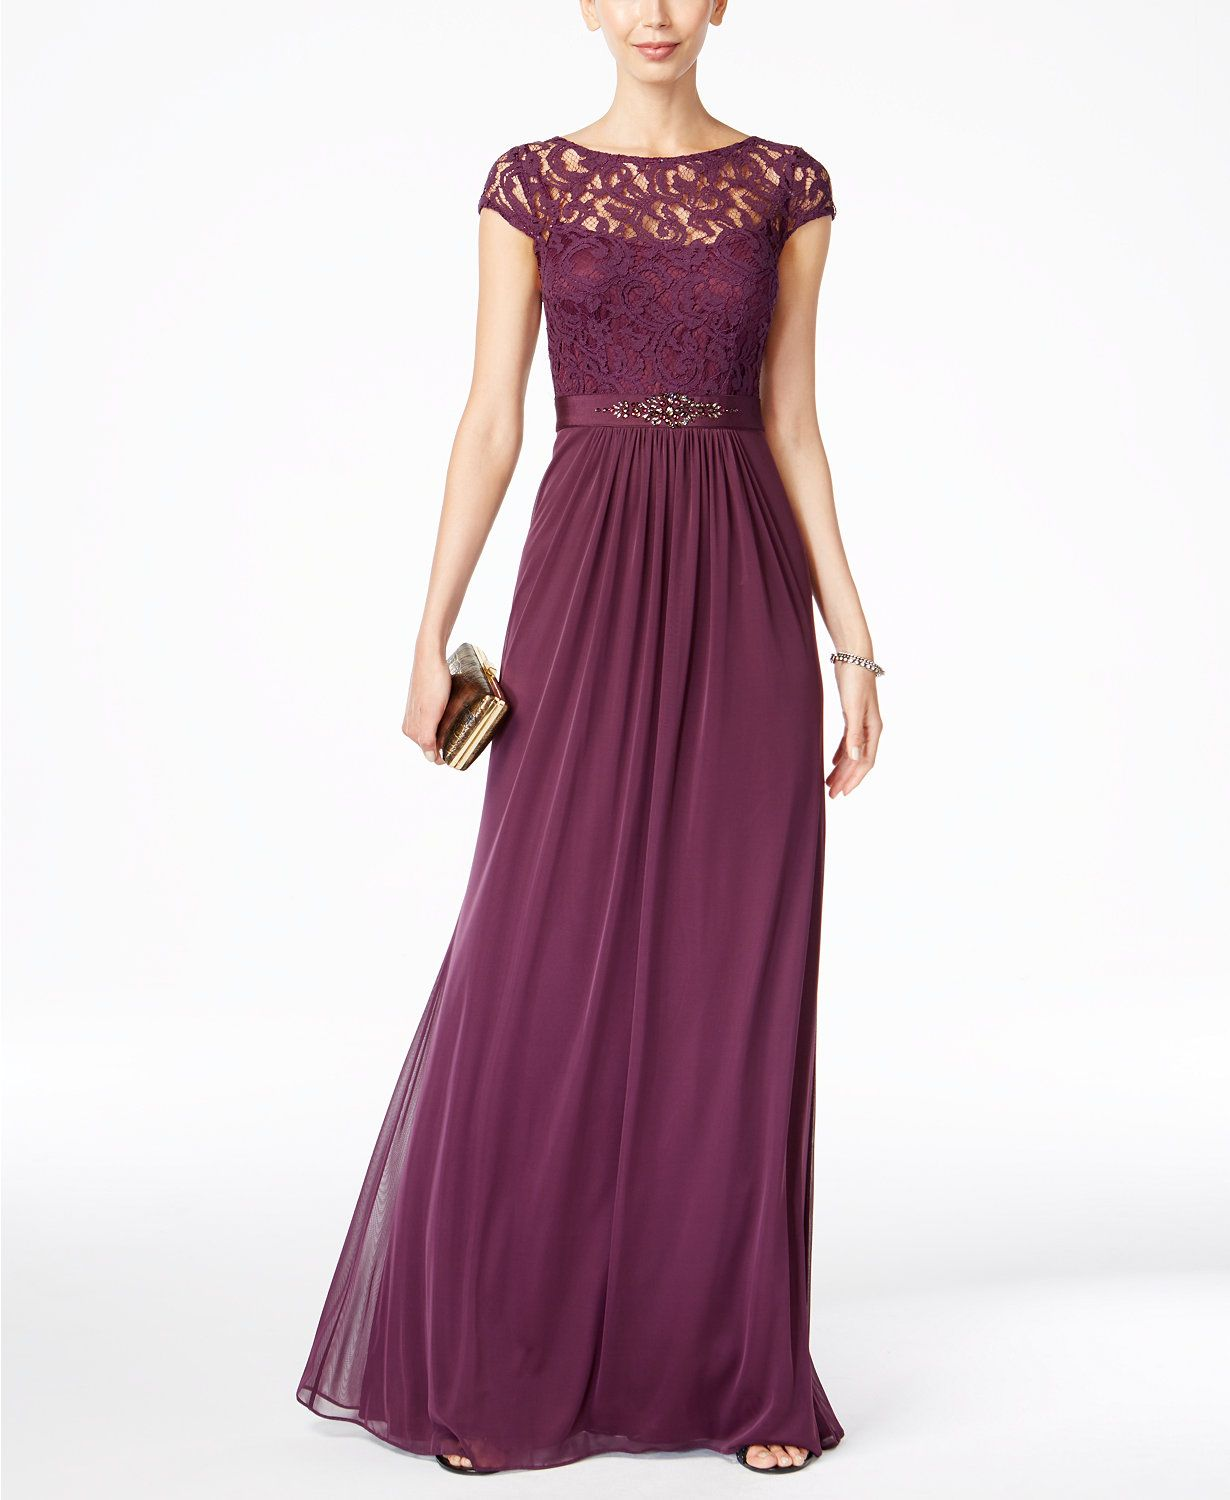 Adrianna Papell Lace Illusion Gown | macys.com | M.O.B. | Pinterest ...